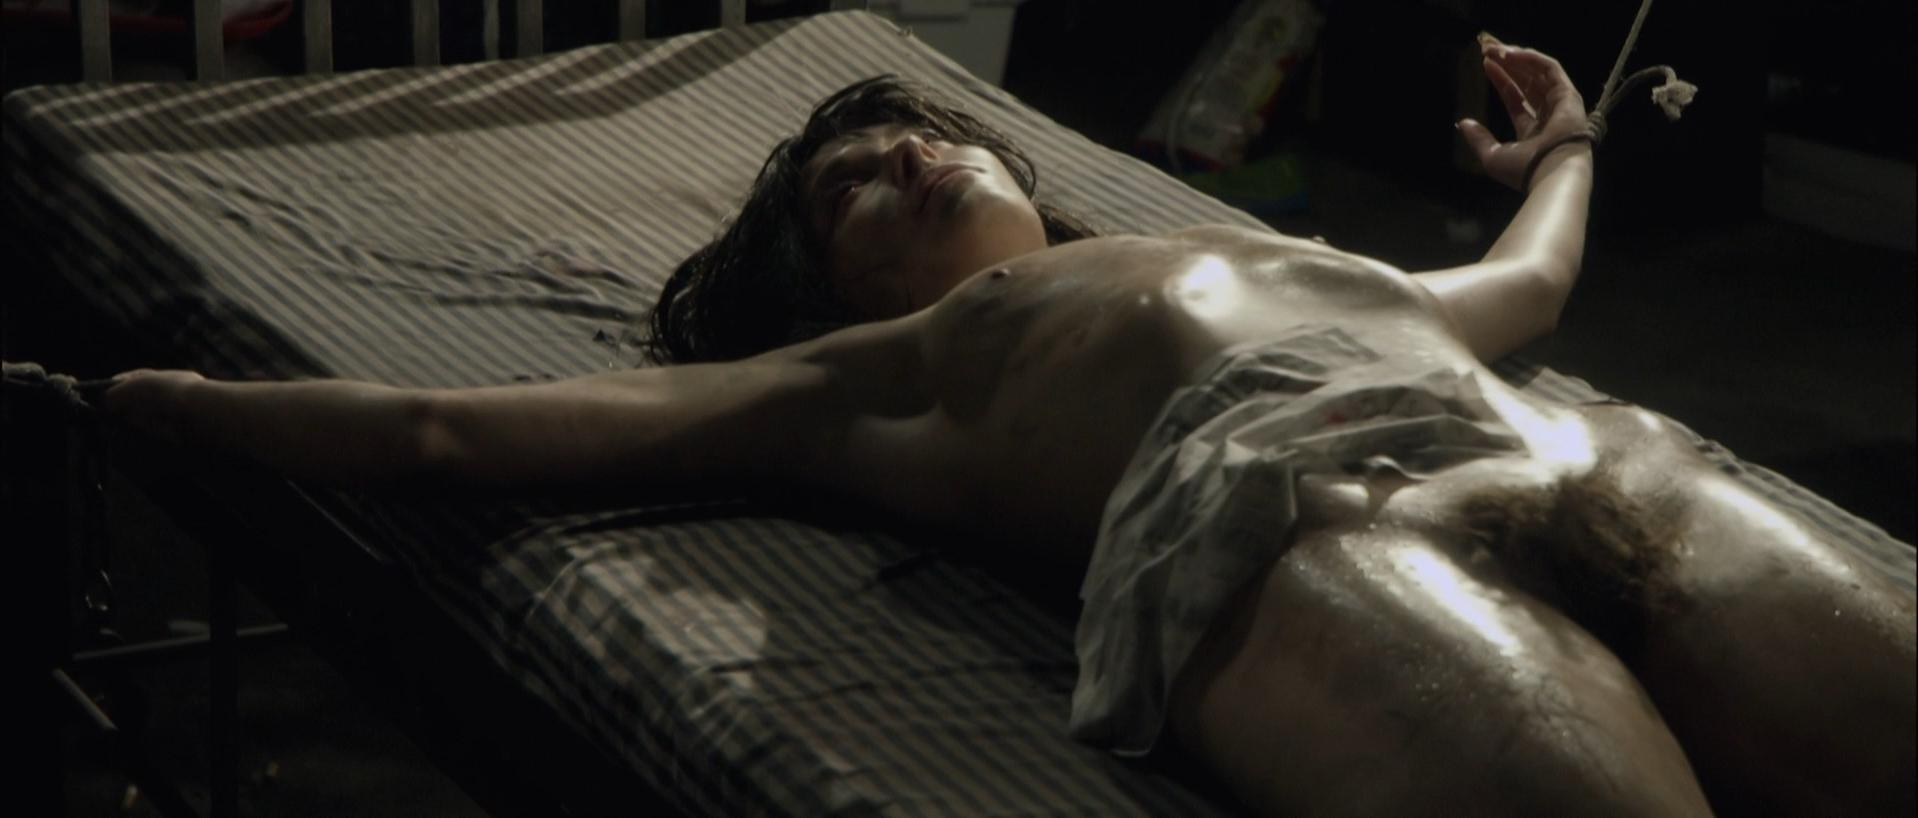 Girls from the movie warm bodies nude — pic 7